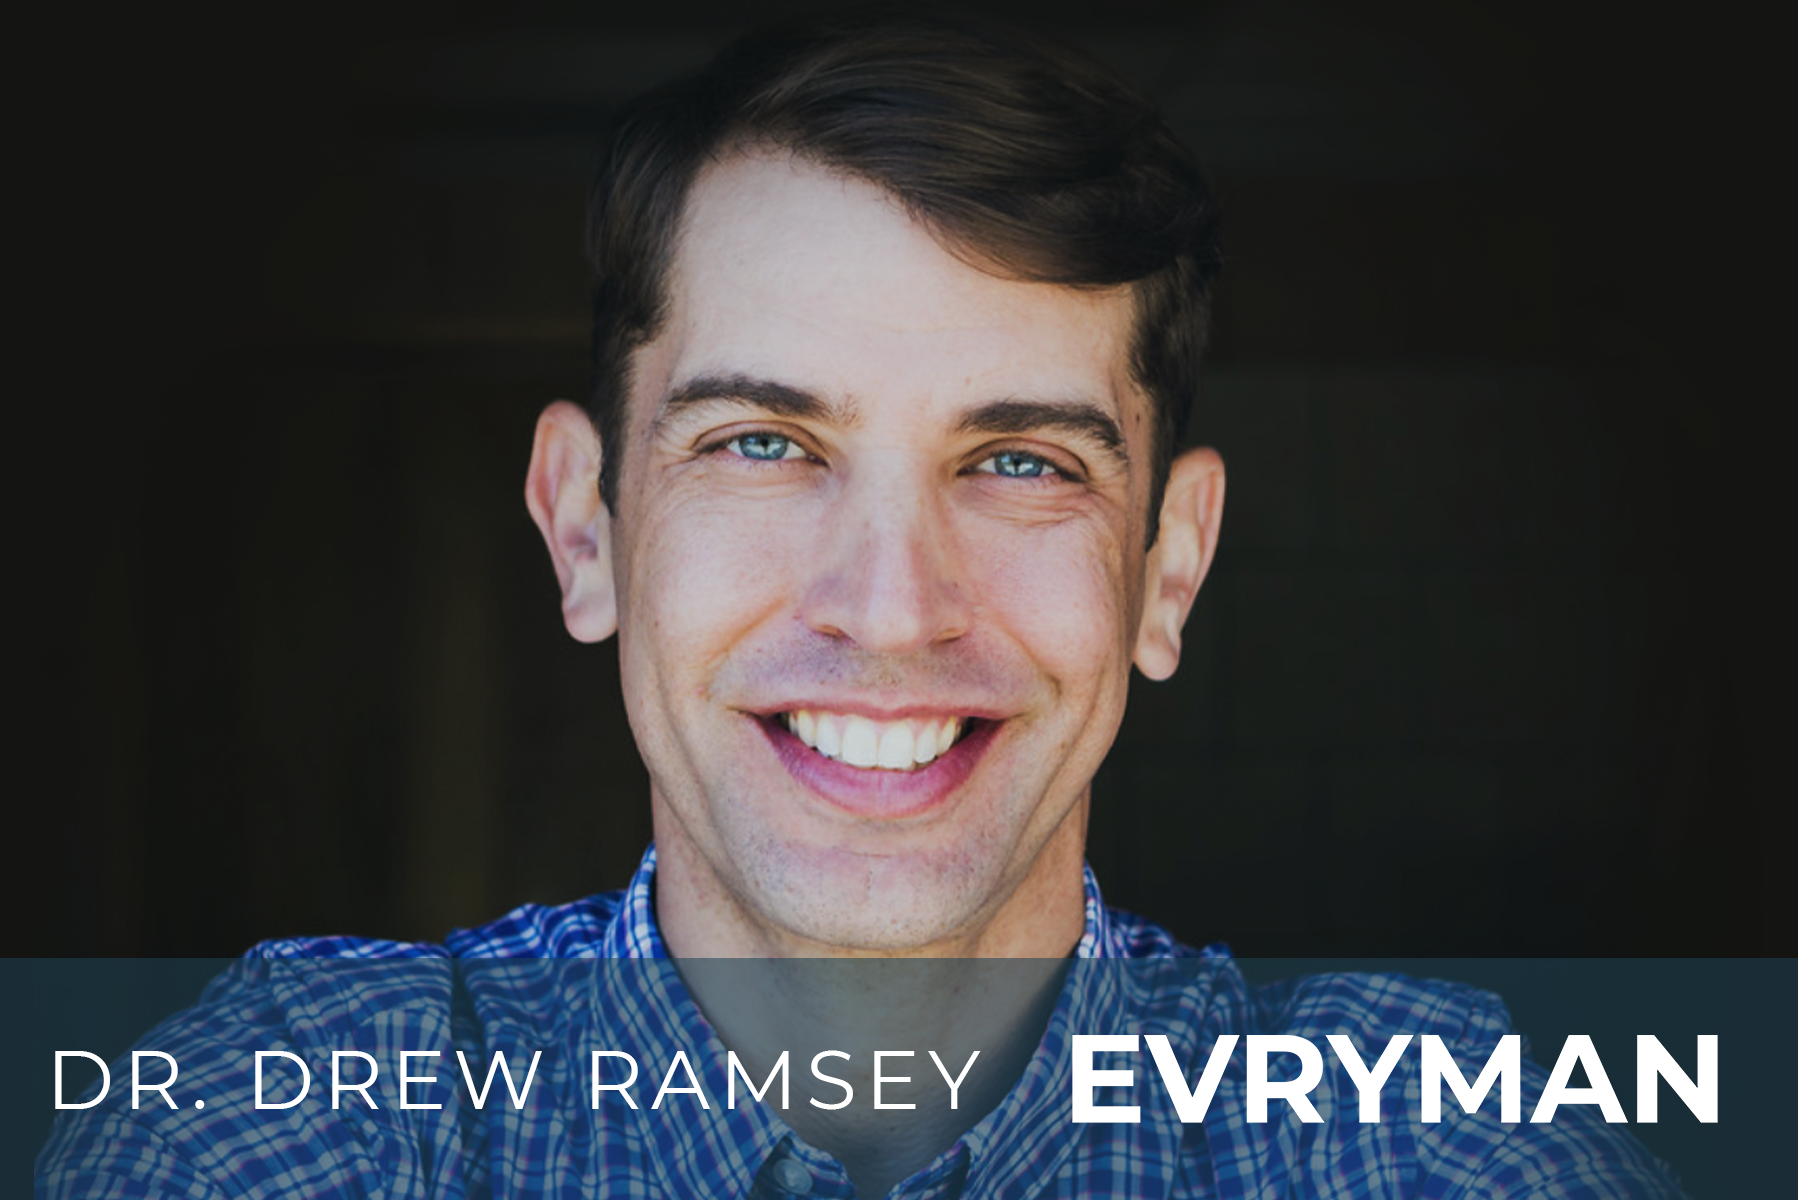 Building Mental Health With Food - Evryman Global Community Call With Dr. Drew Ramsey